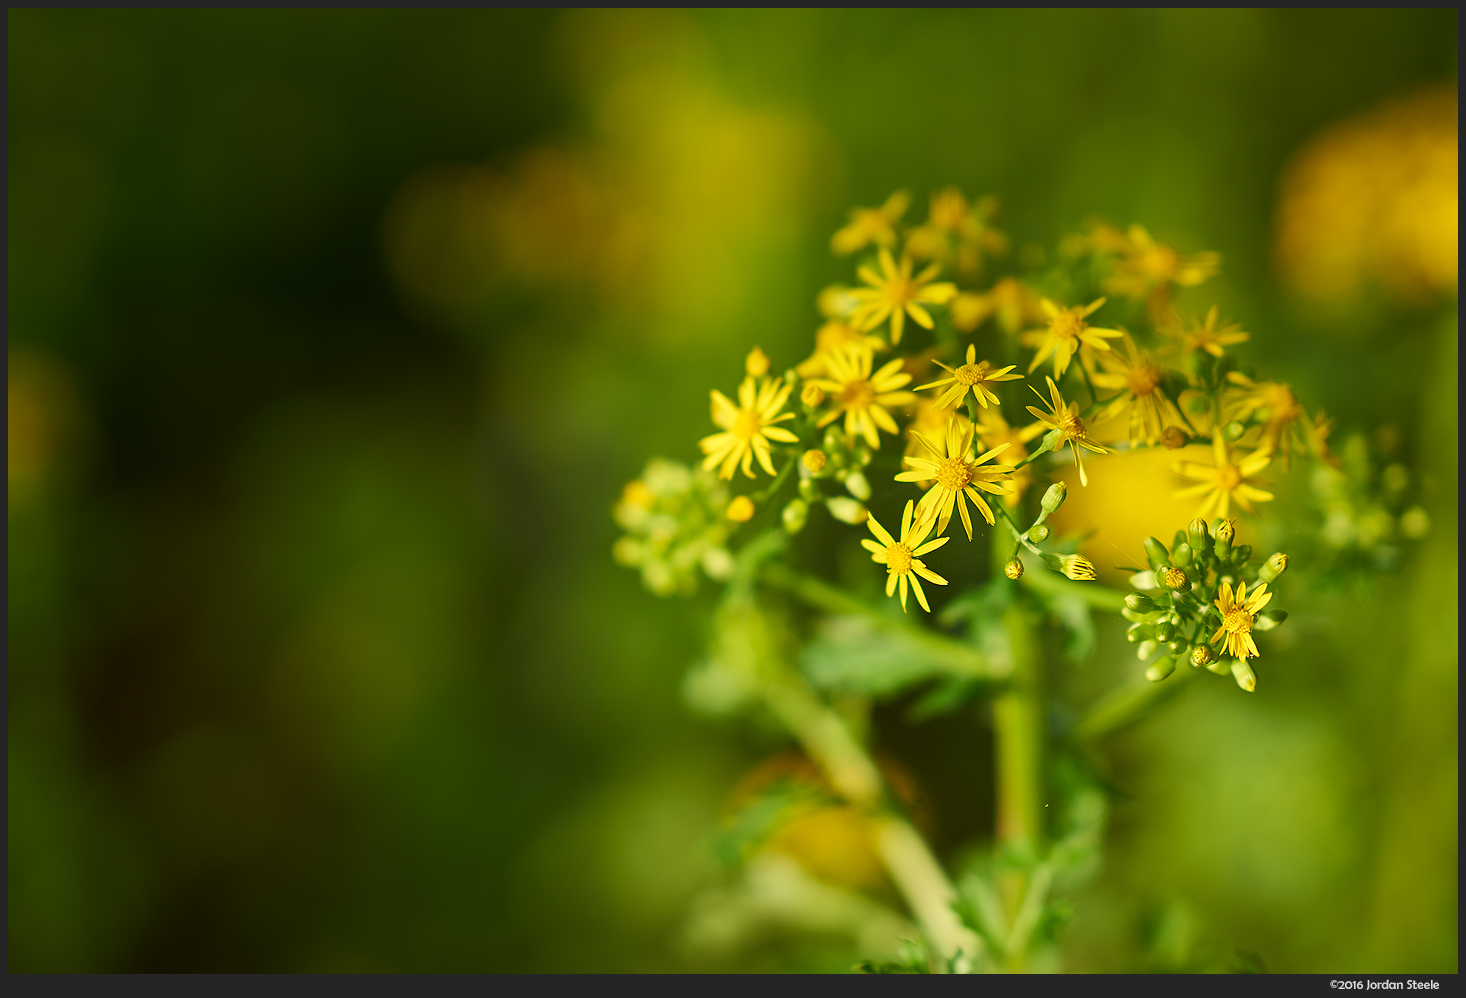 Yellow Flowers - Sony A7 II with Sony 85mm f/1.4 GM @